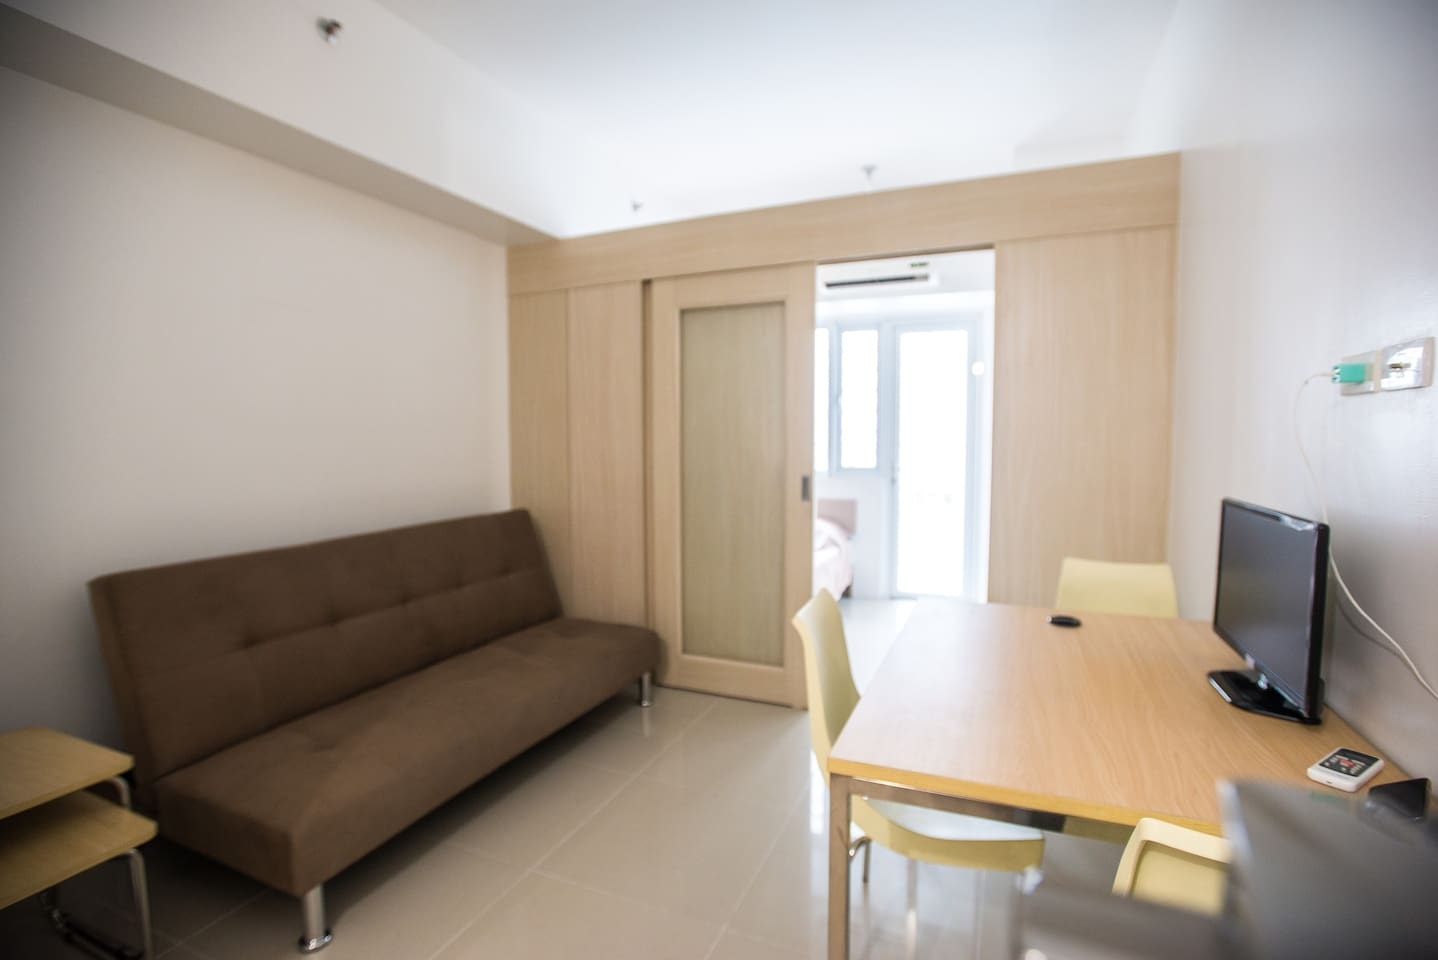 The living space has a sofa bed (which goes flat), a dining table and small TV. The double bed is behind the partition and faces the communal pool area outside.